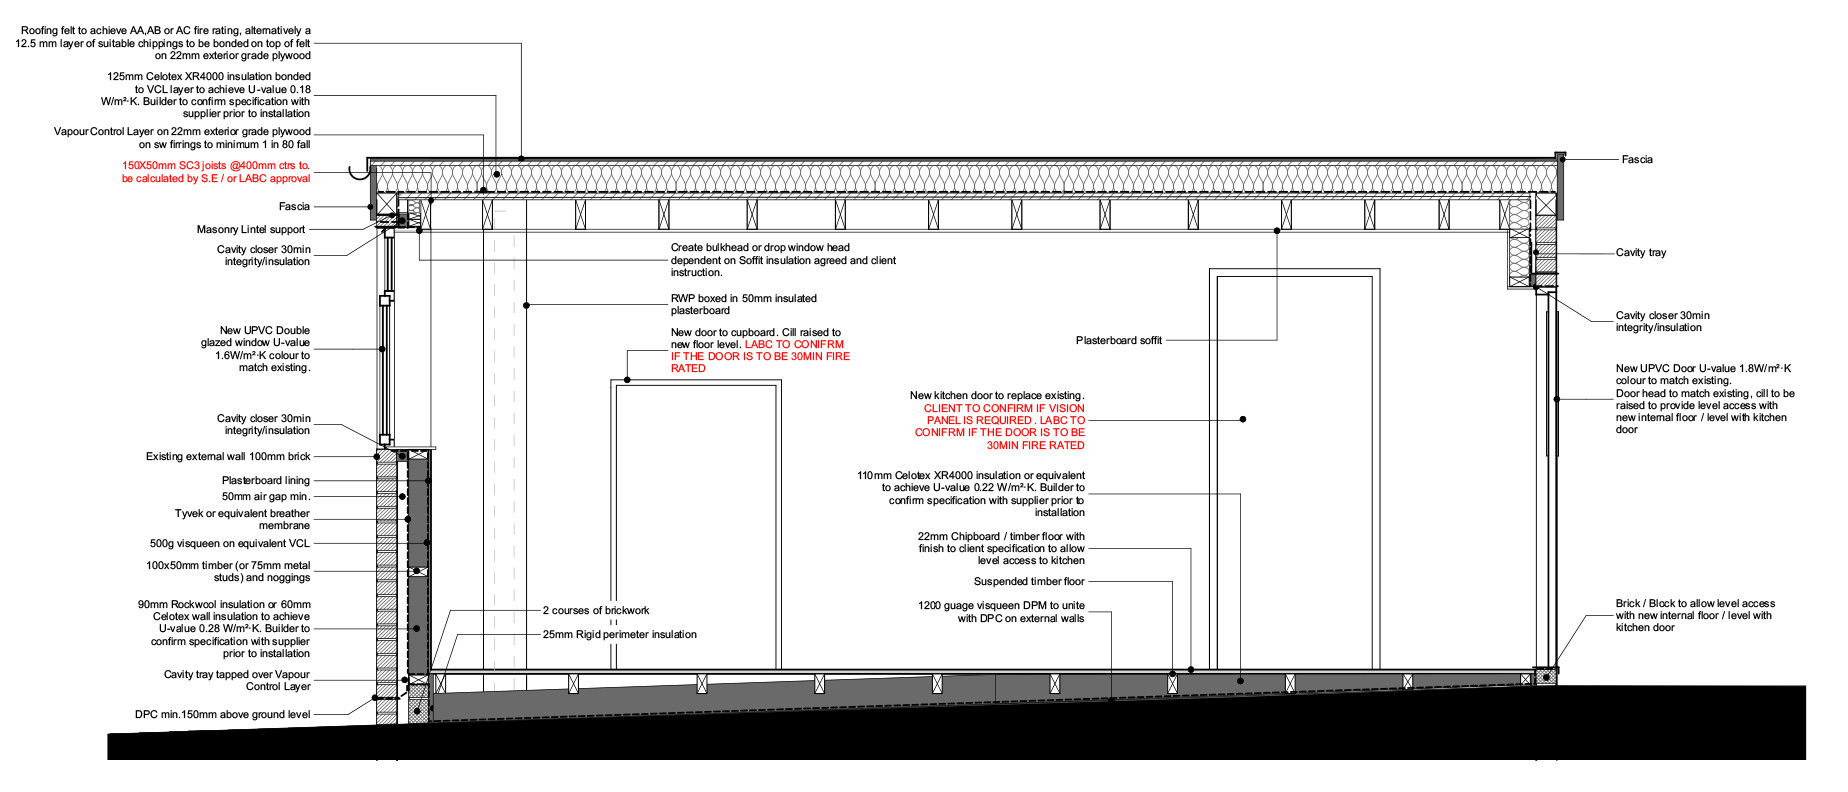 Building Regulations - Section Detail